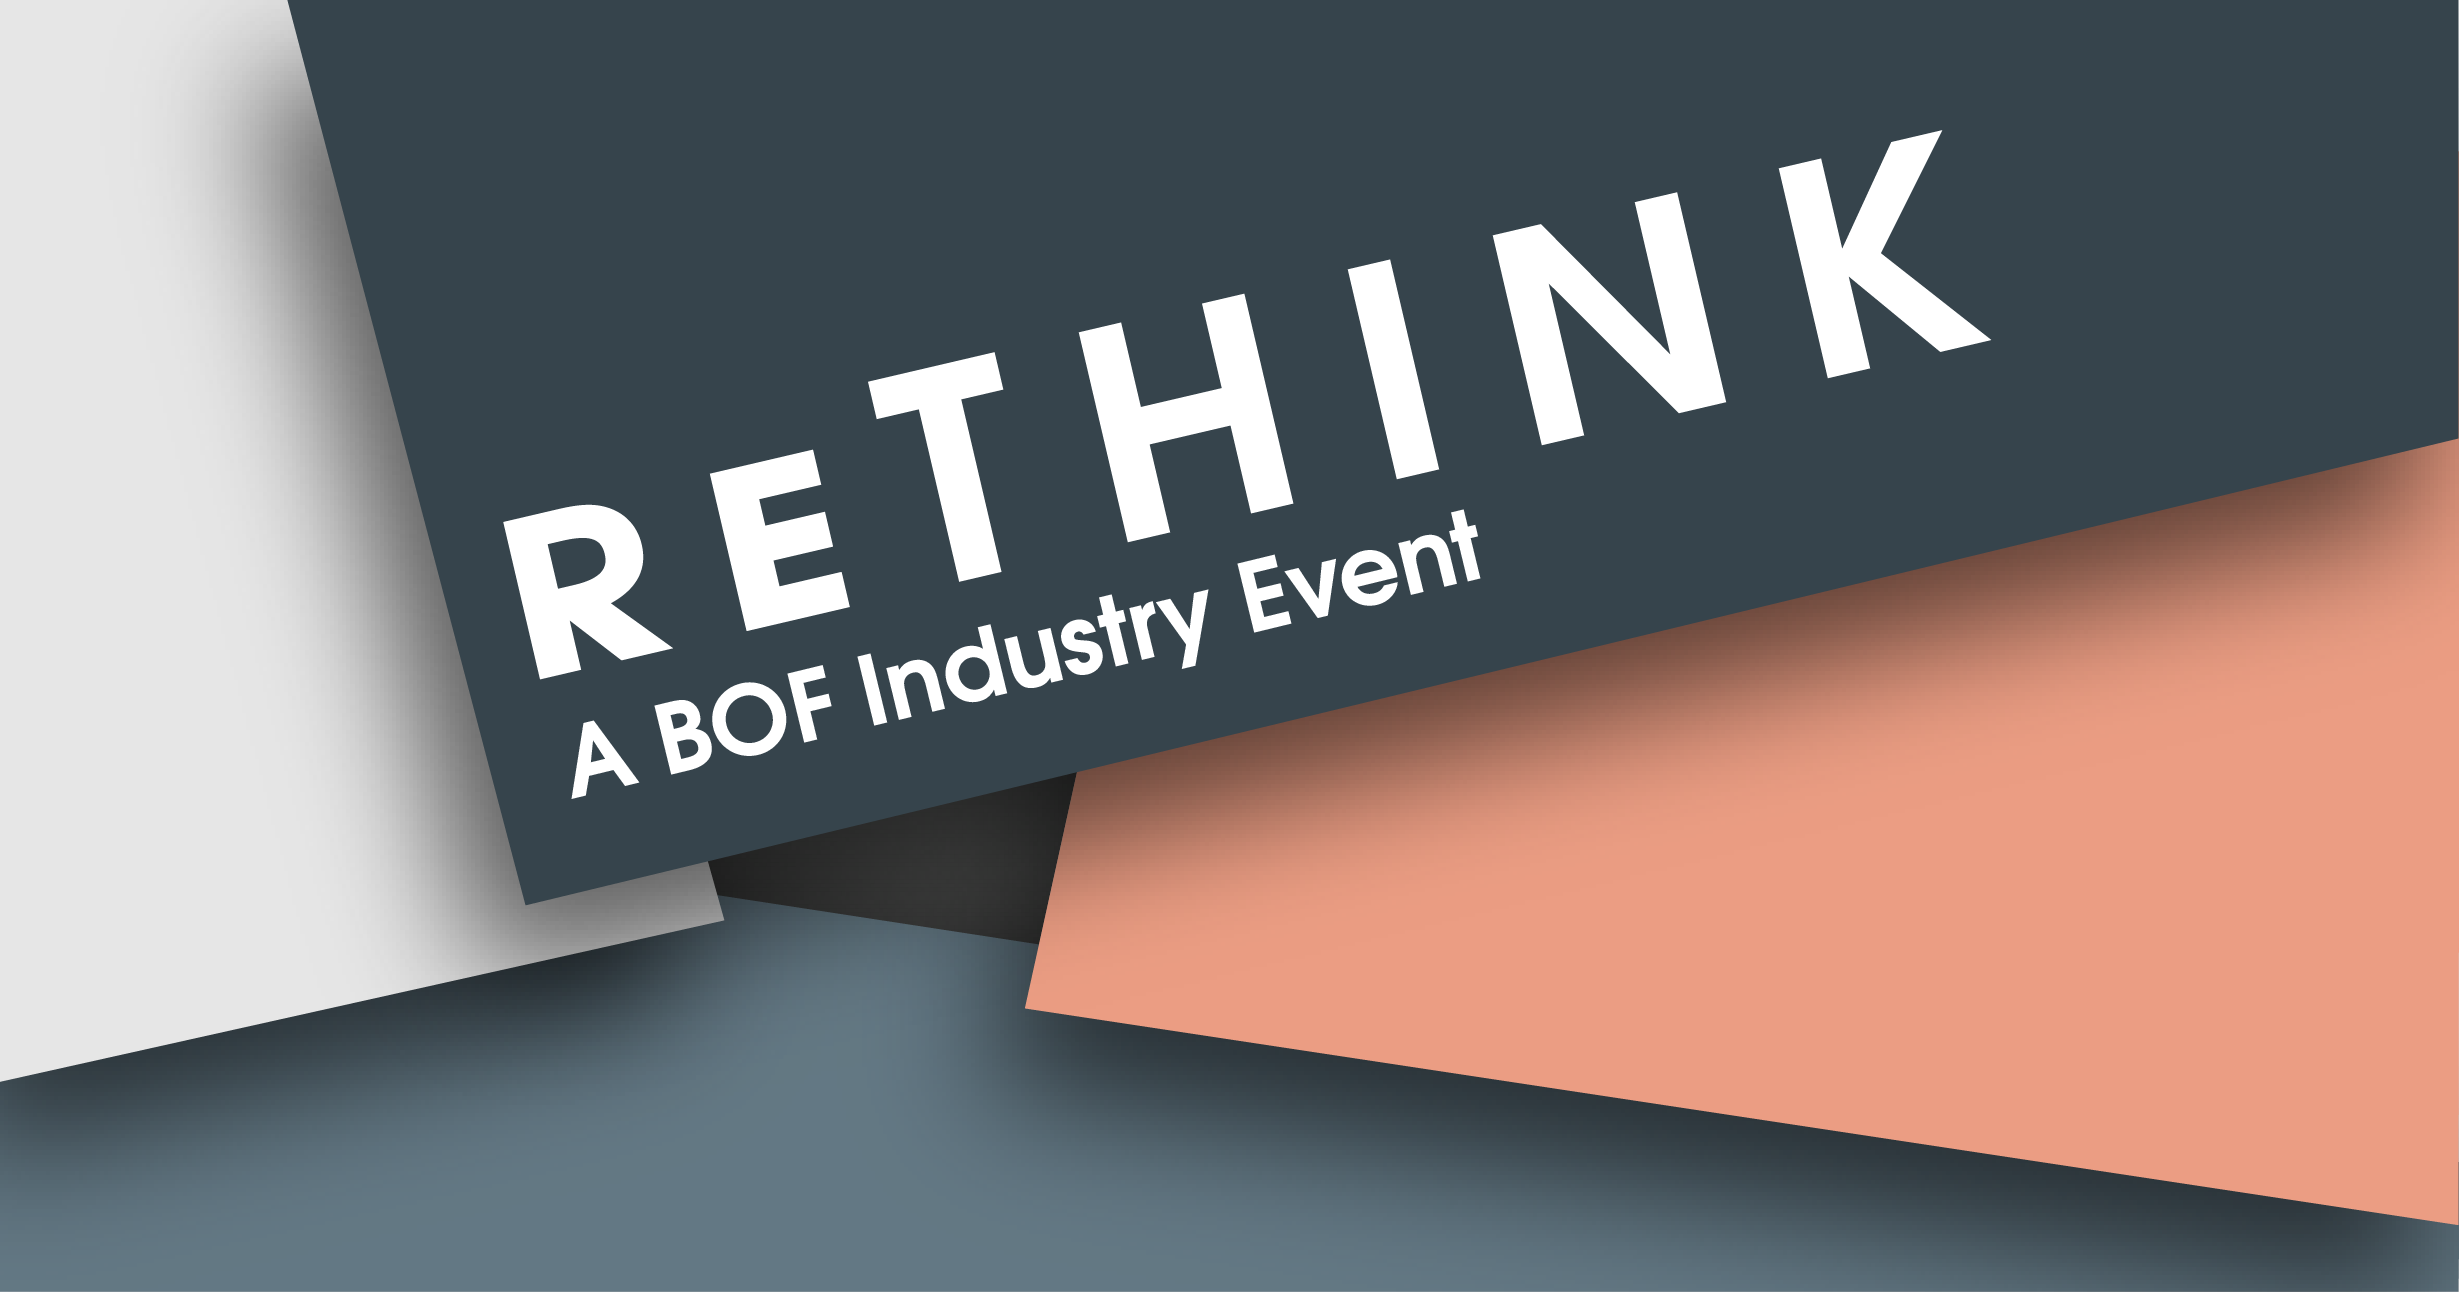 ReThink - A BOF Industry Event